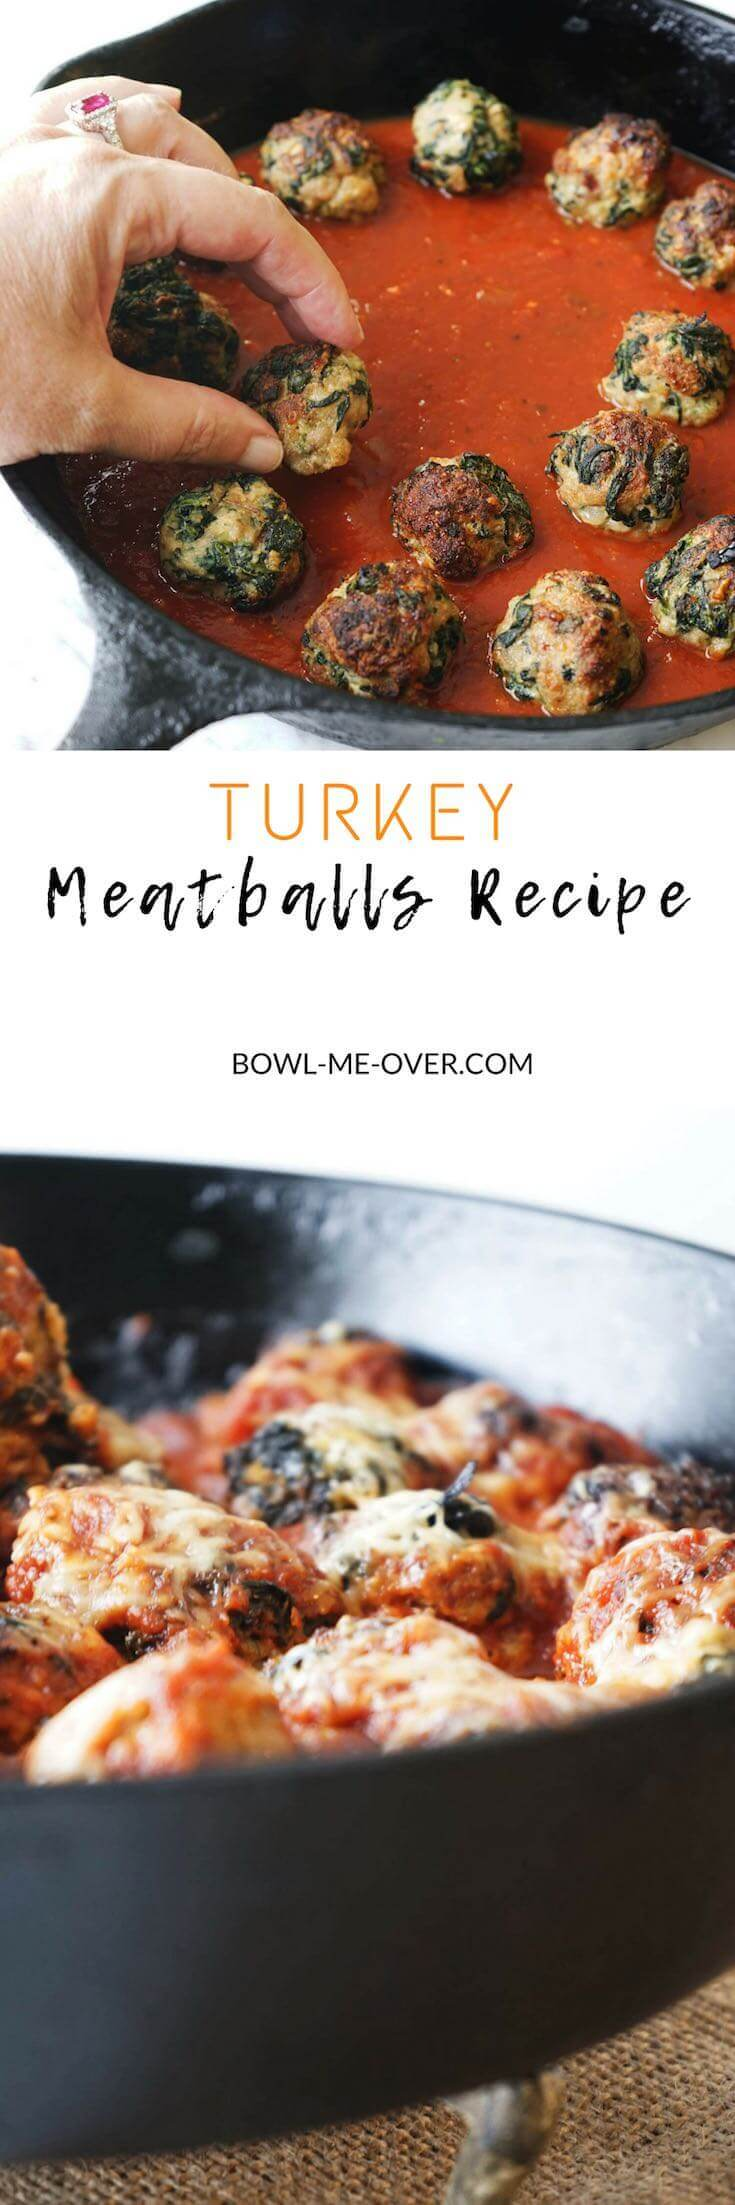 Do you enjoy moist delicious meatballs? So tender they melt in your mouth. These are a little spicy, a little sweet and shhhh…..don't tell but they are turkey meatballs so they are good for you too!